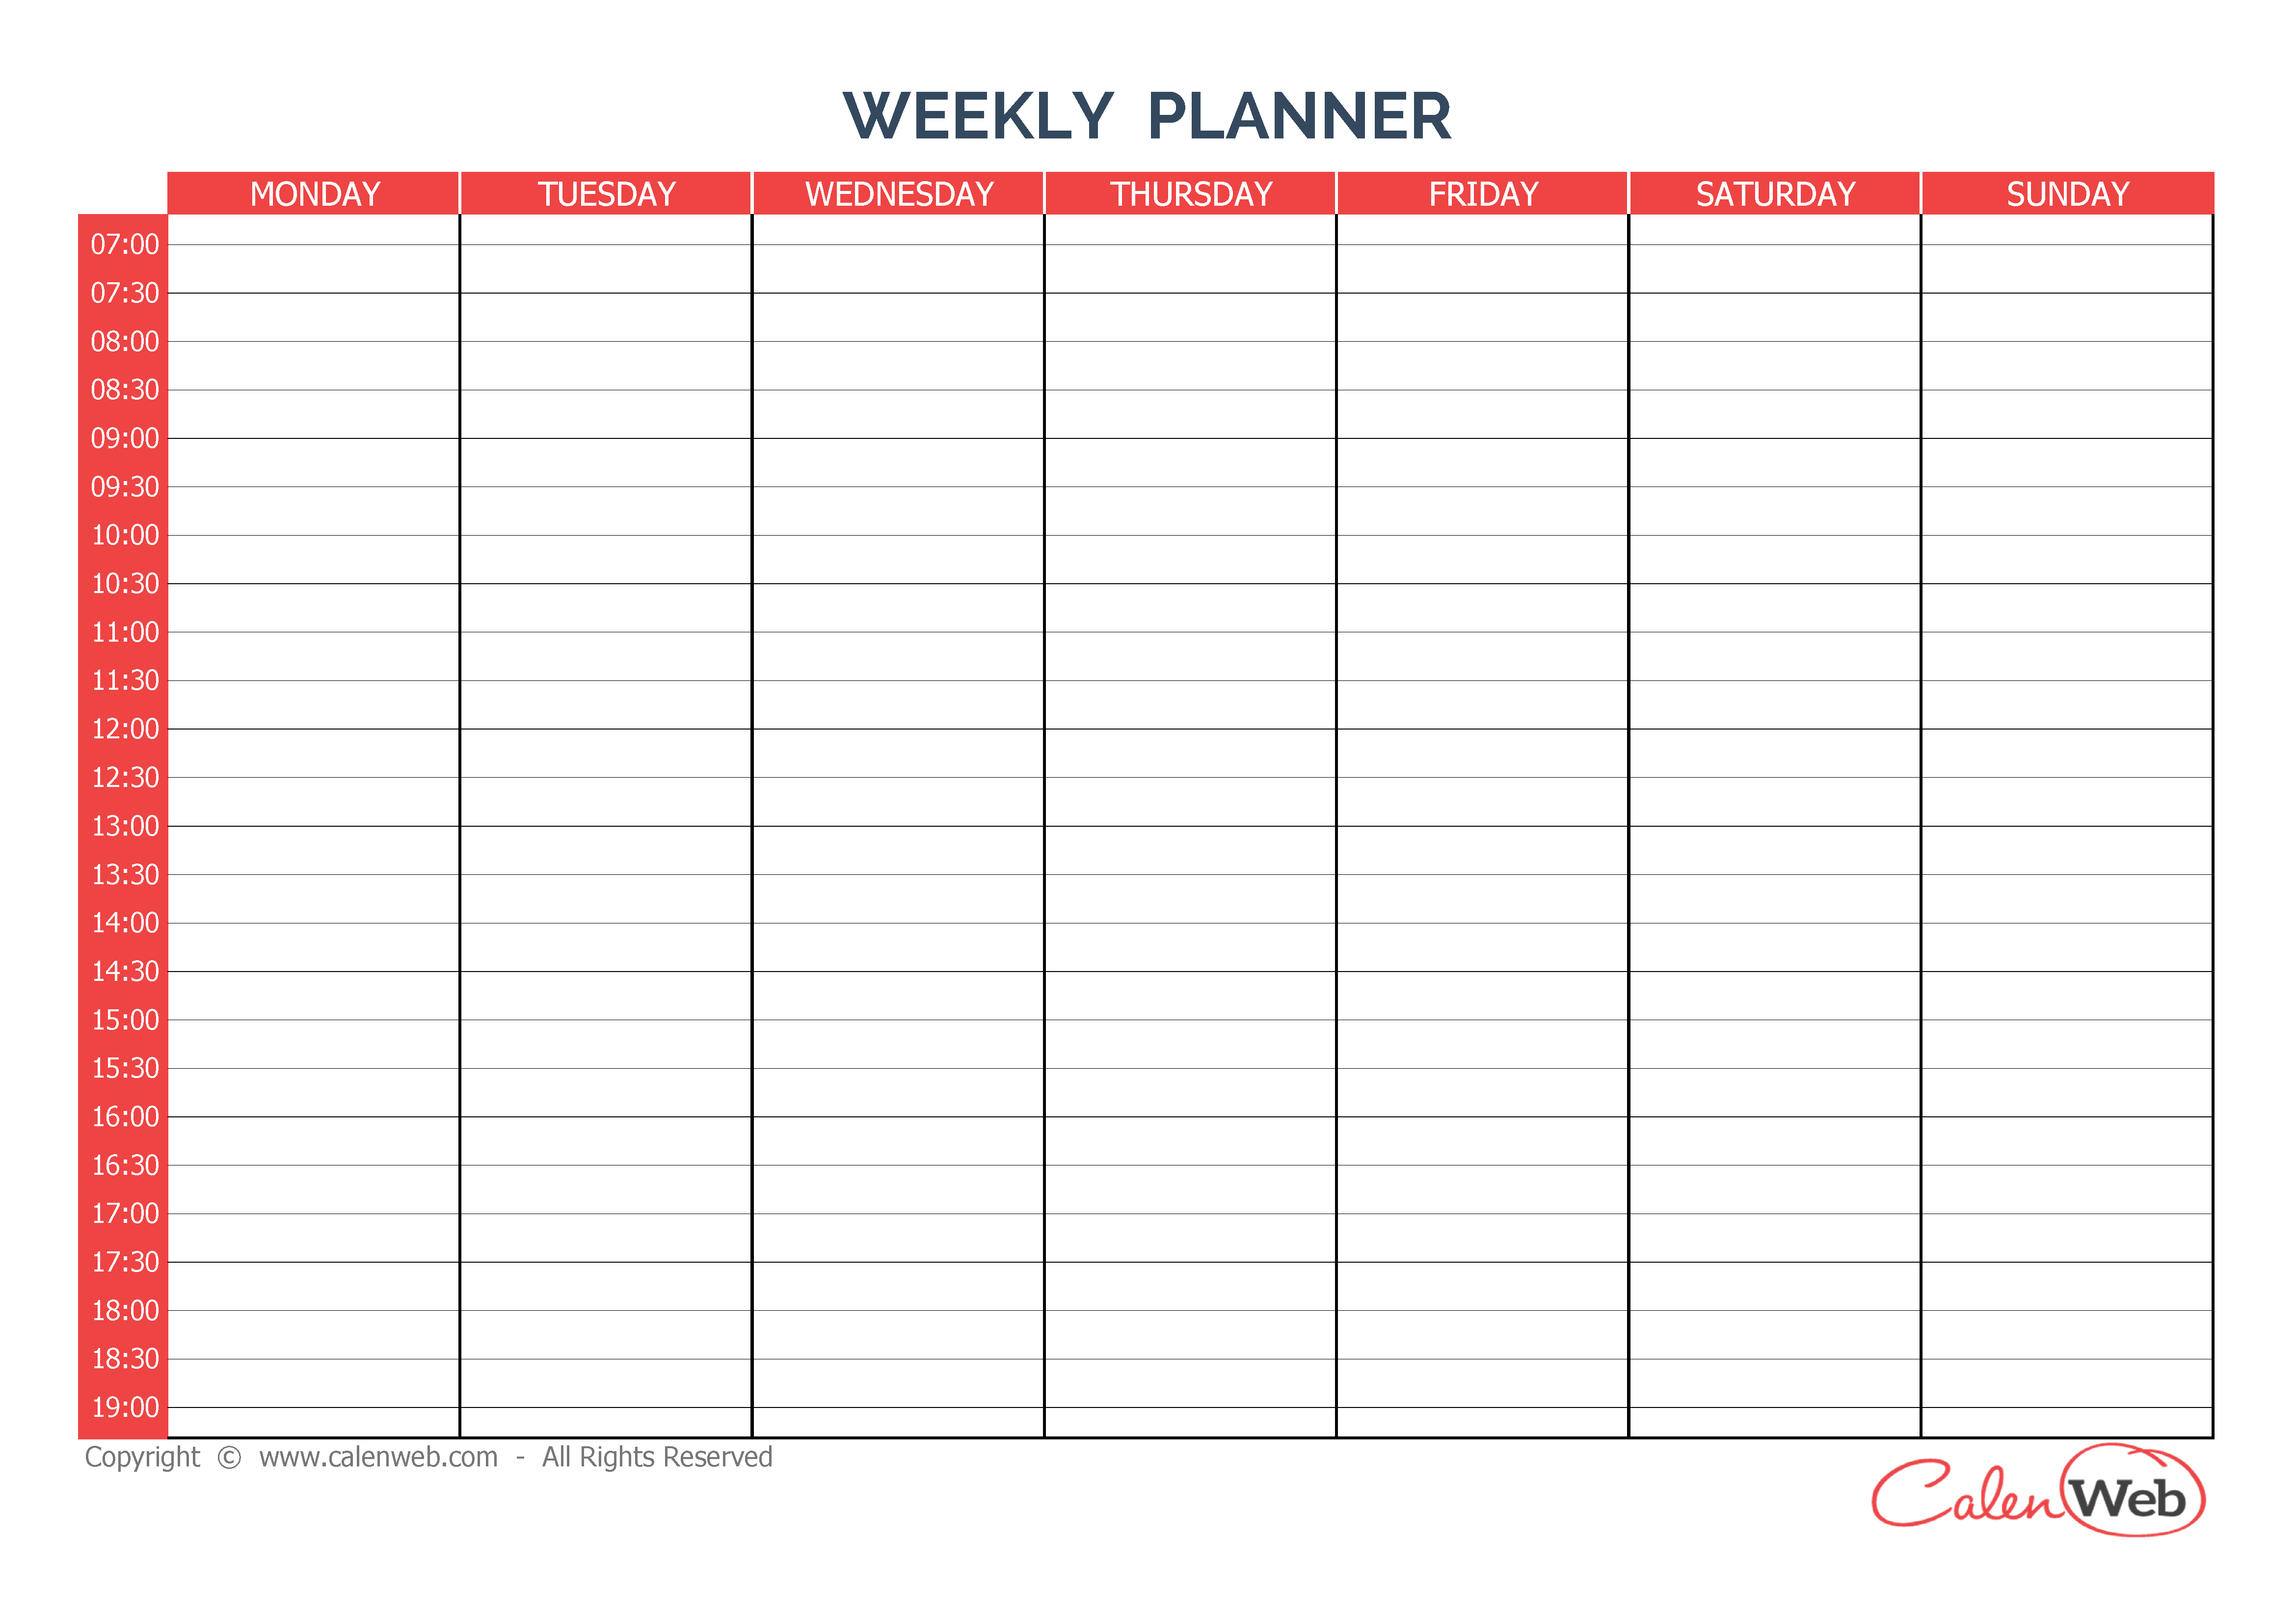 Day 7 Weekly Planner Template | Day Weekly Planner Printable in Wincalendar April 2020